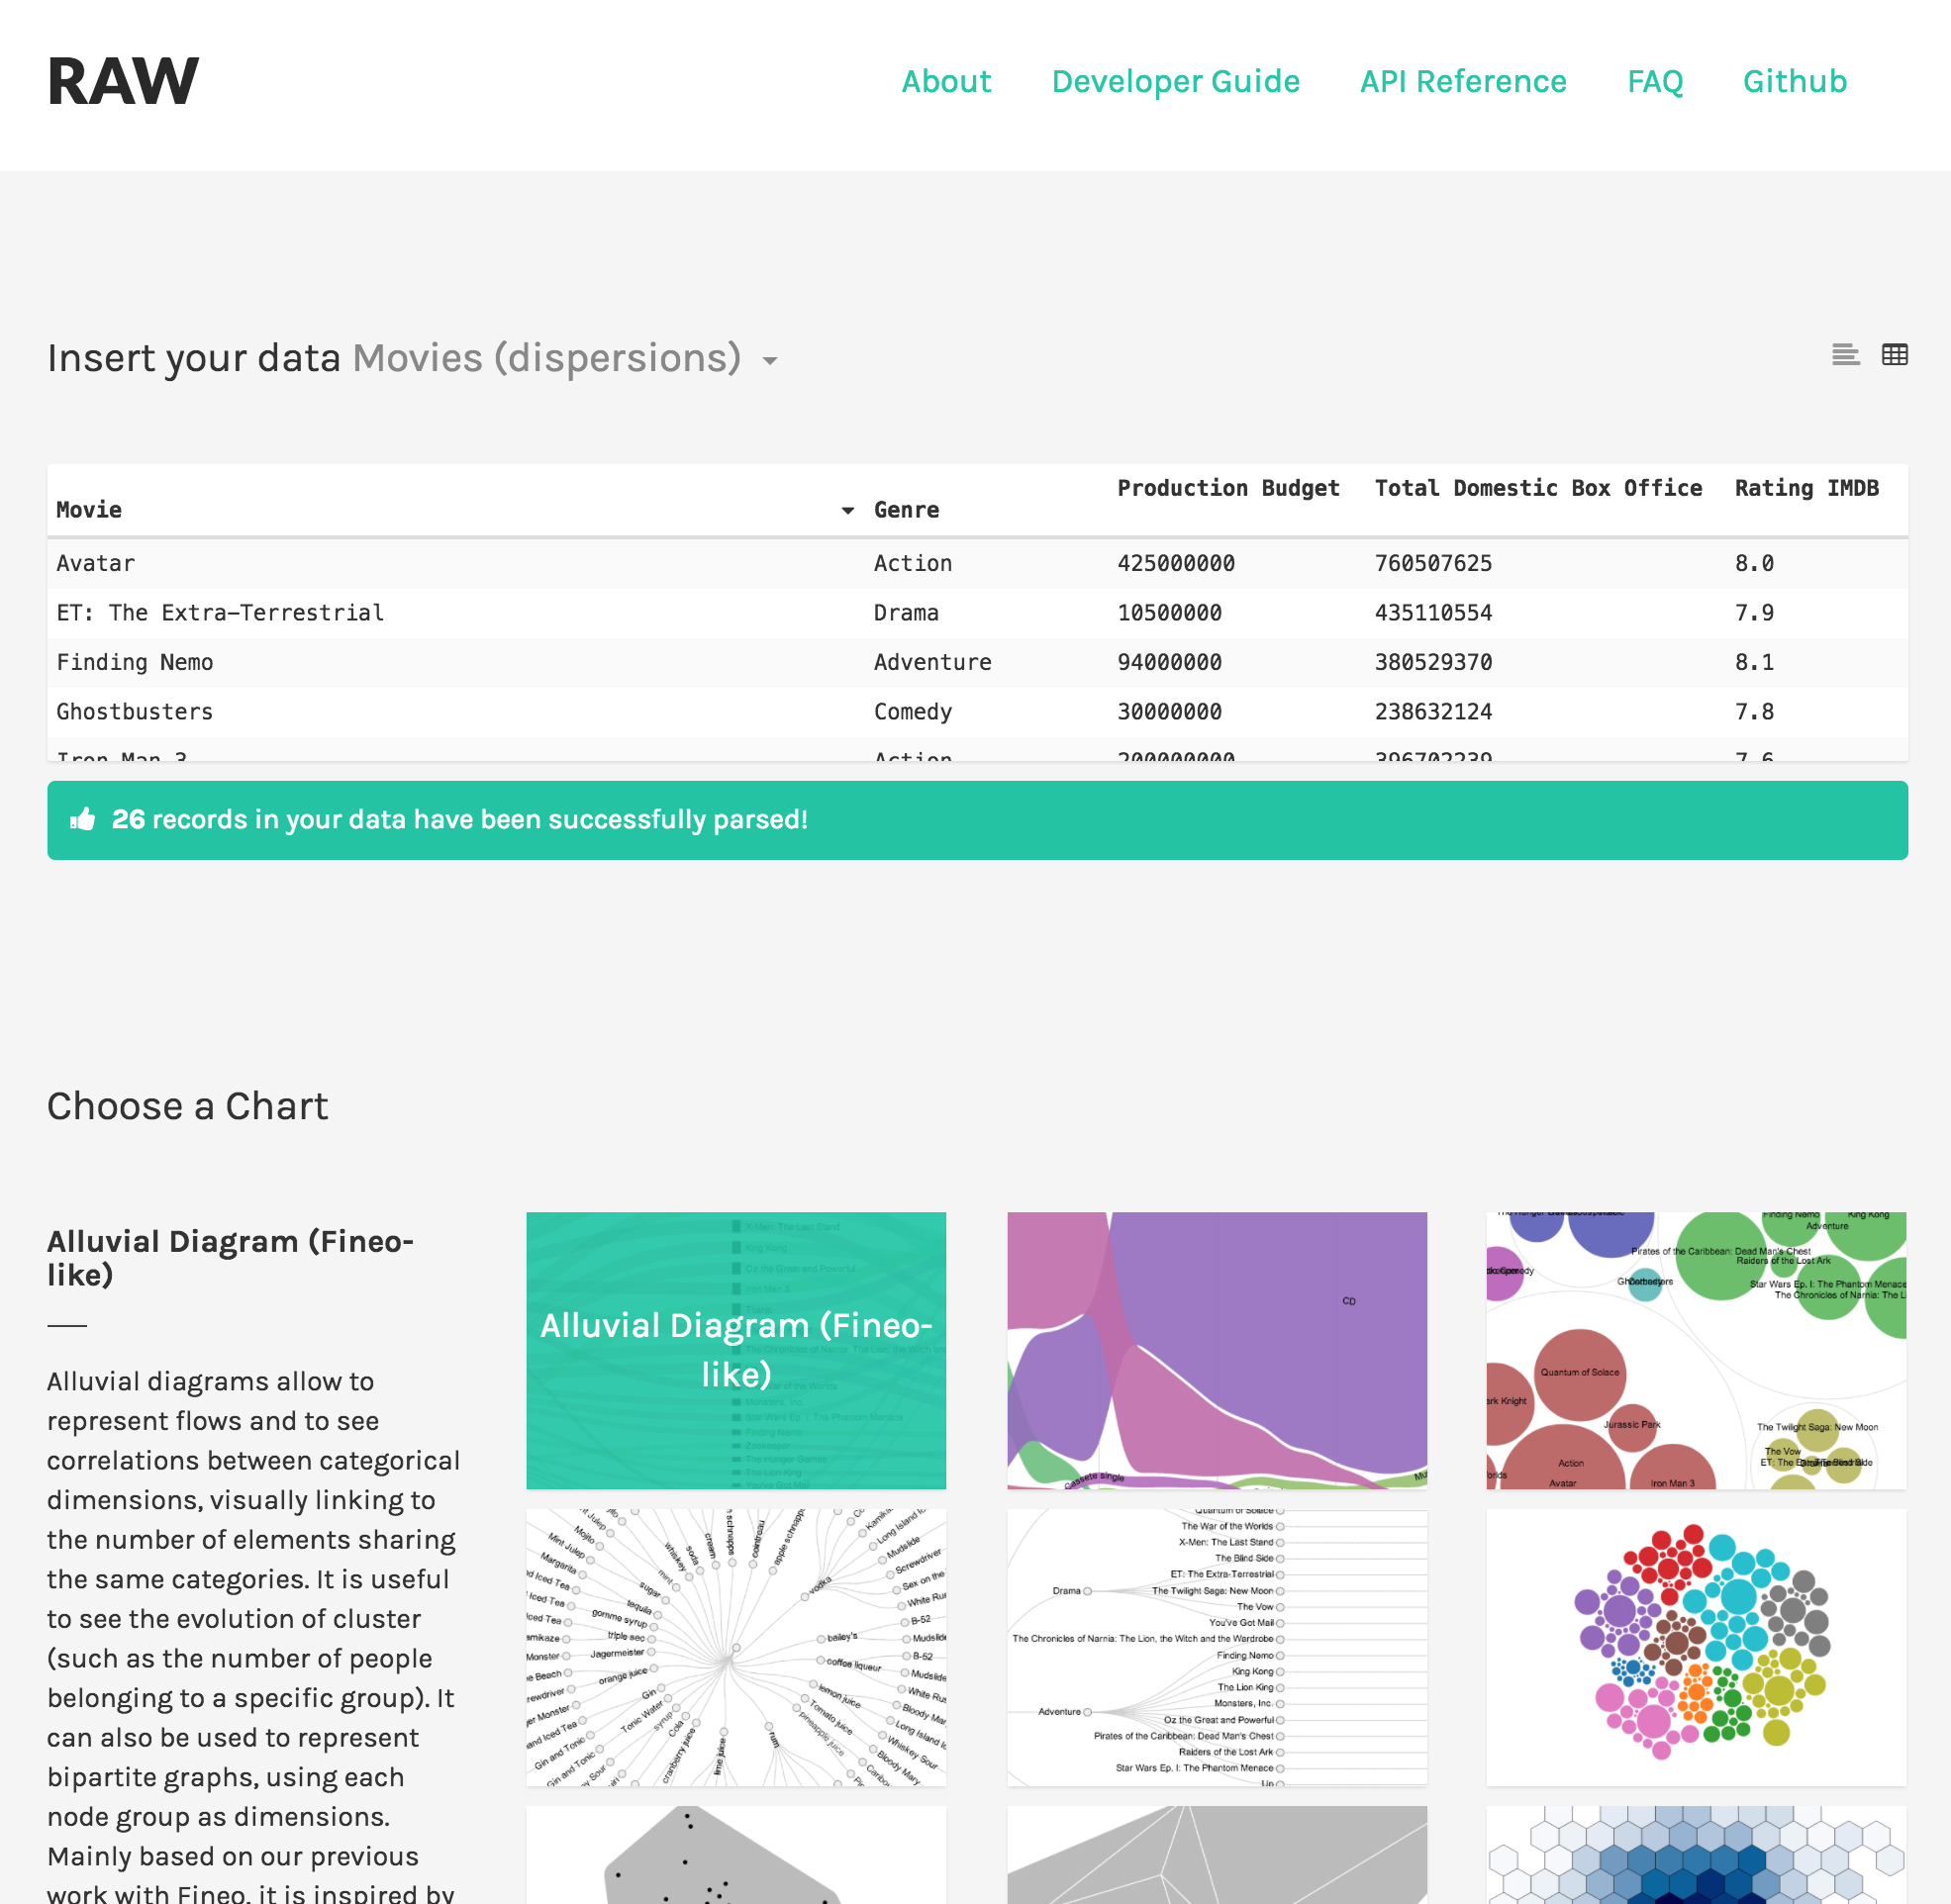 Screenshot of RAW website